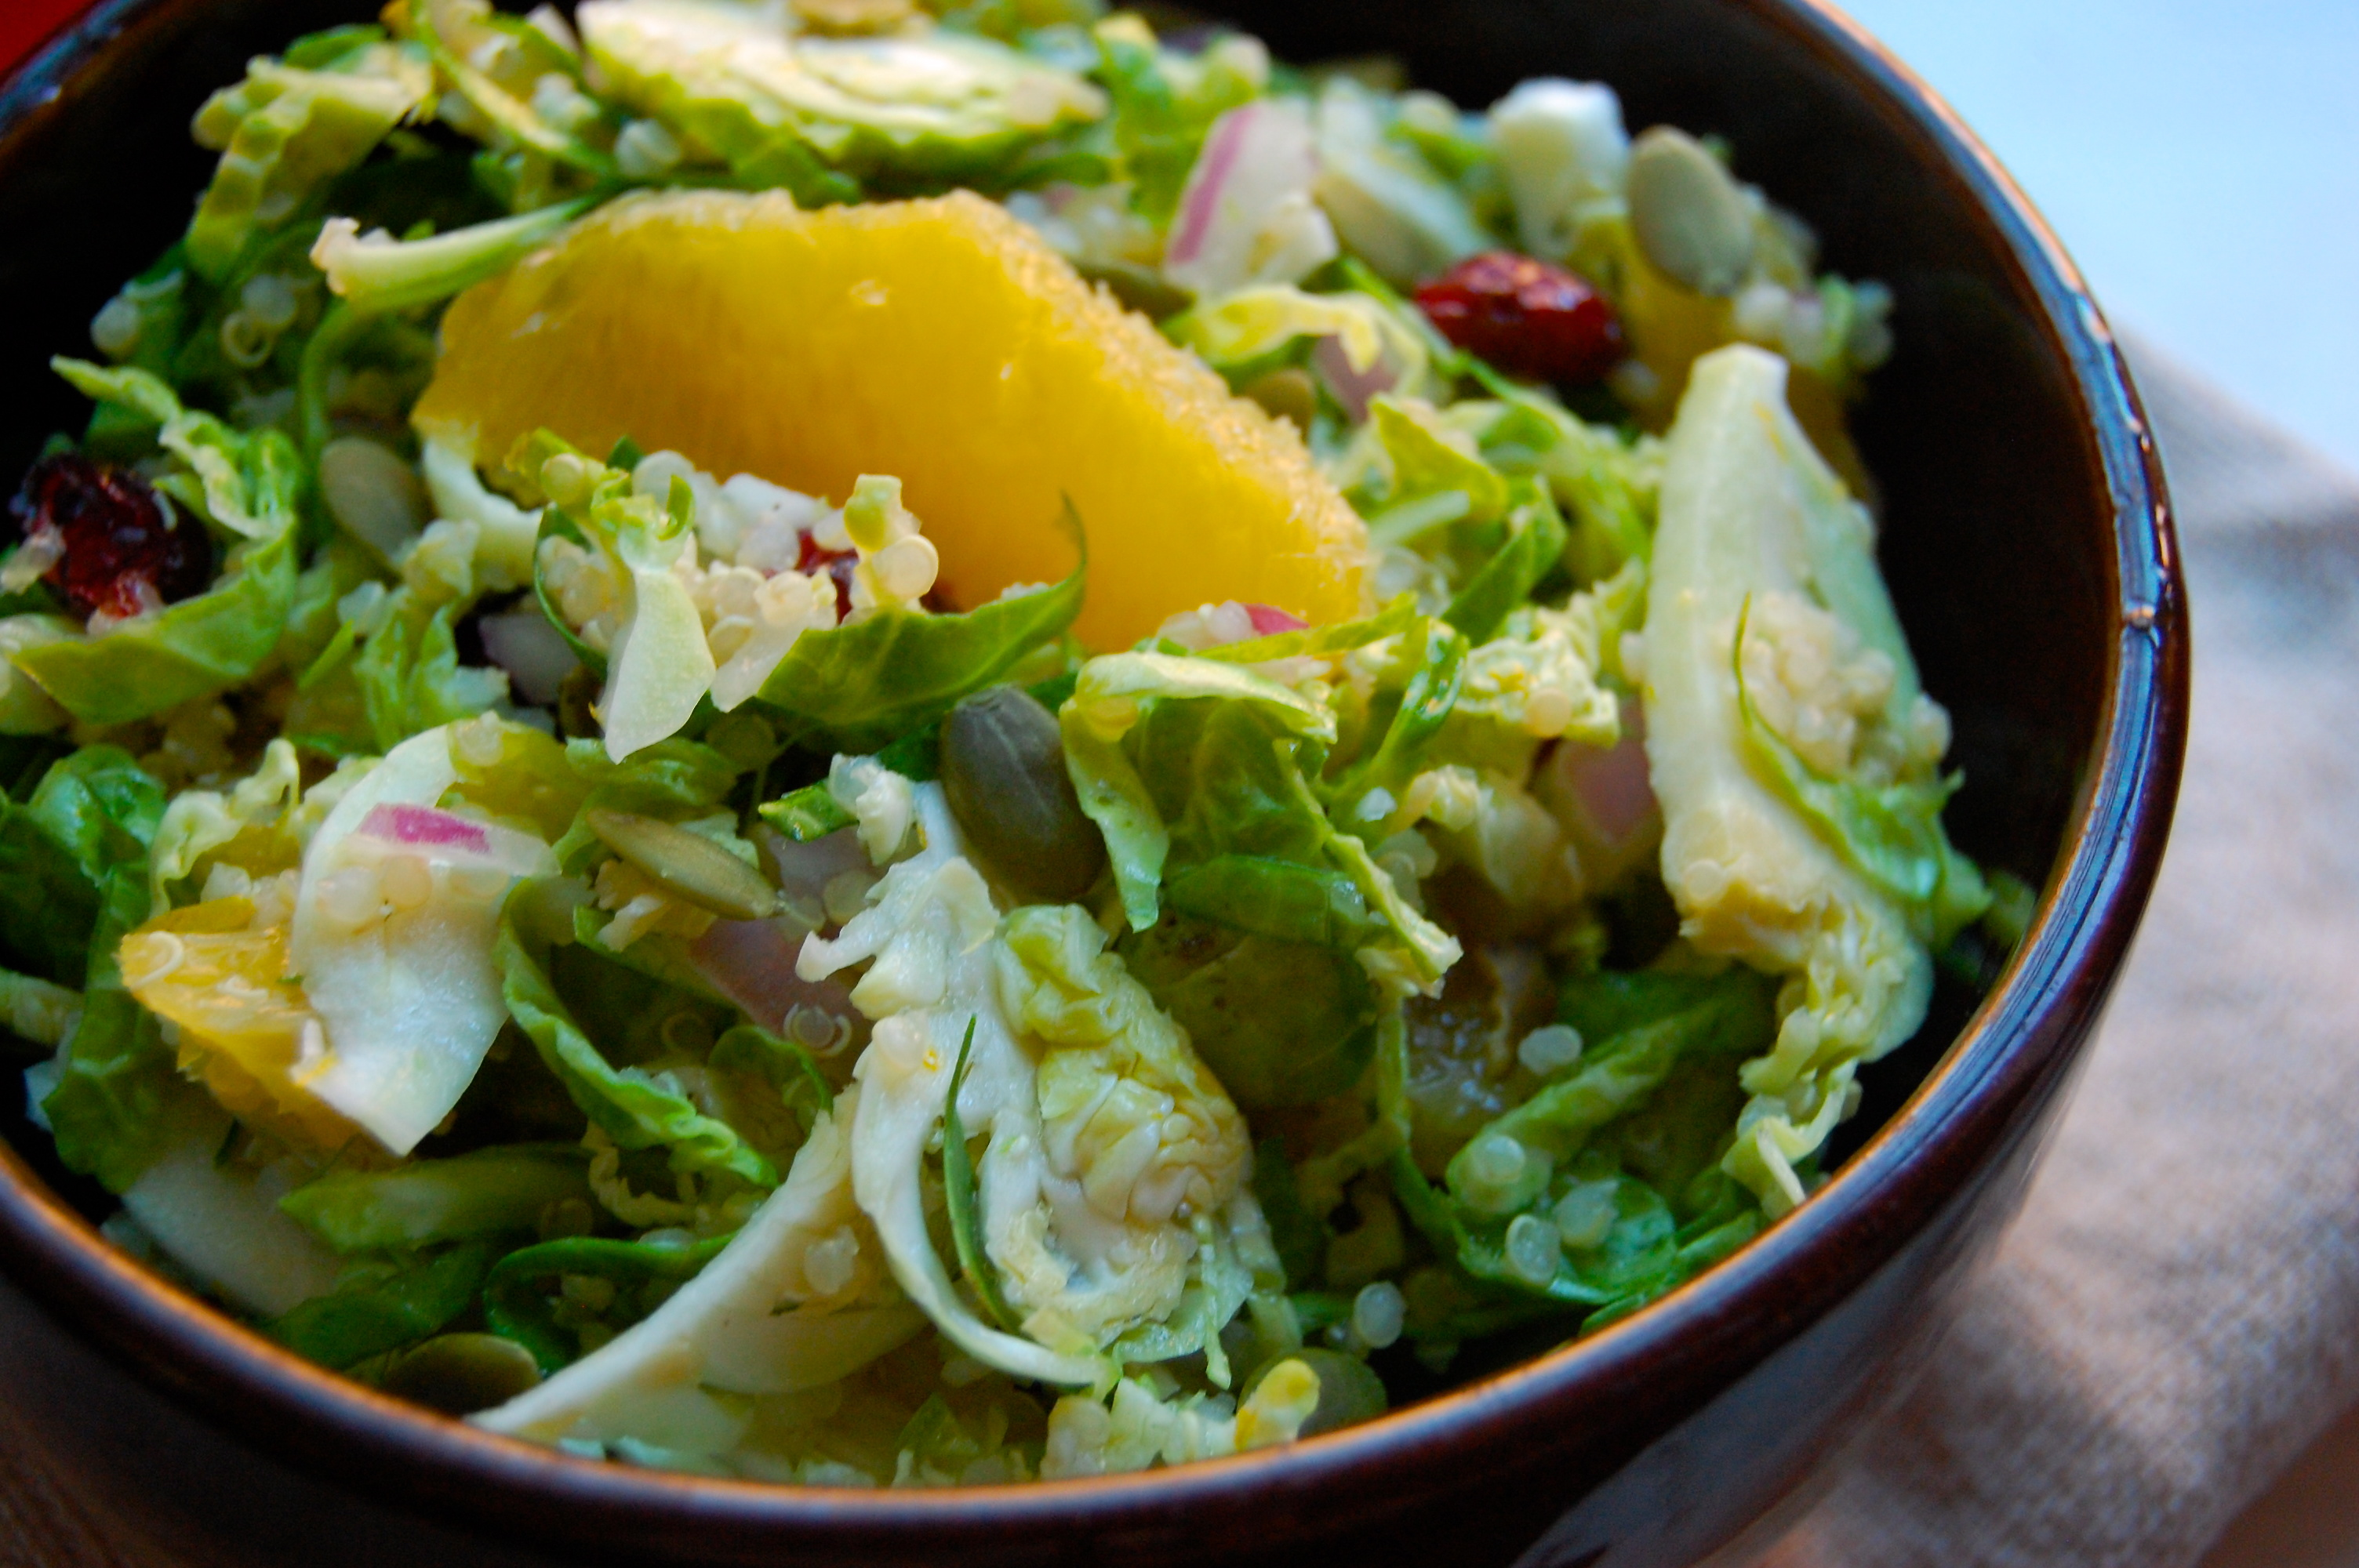 Shaved Brussel Sprout and Quinoa Salad with Cranberries and Oranges